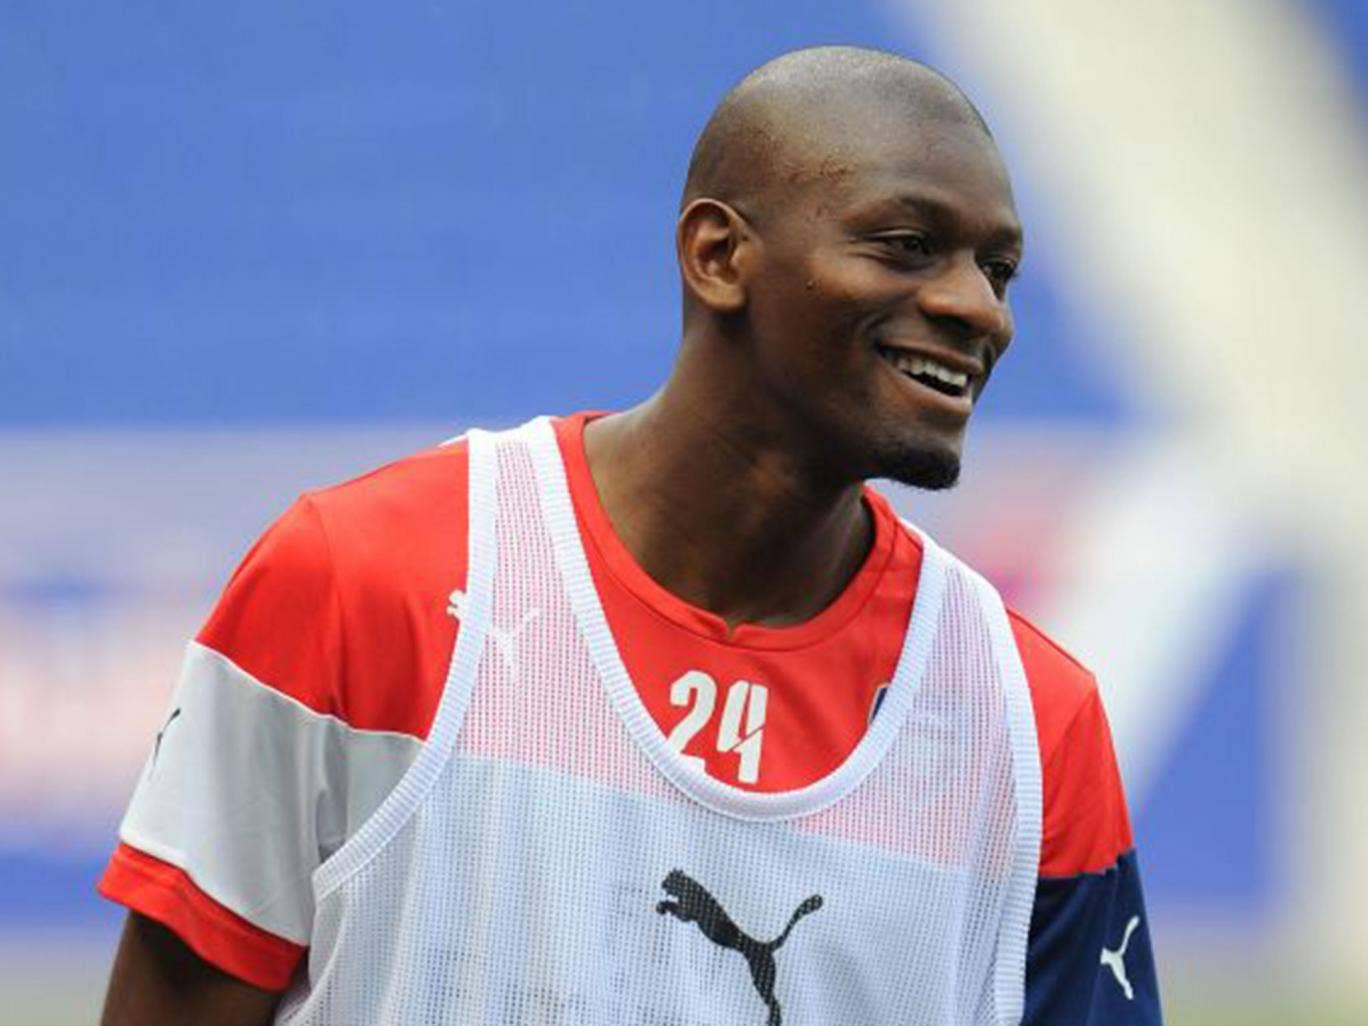 Diaby has endured 39 injury and fitness lay-offs since he joined Arsenal in 2006